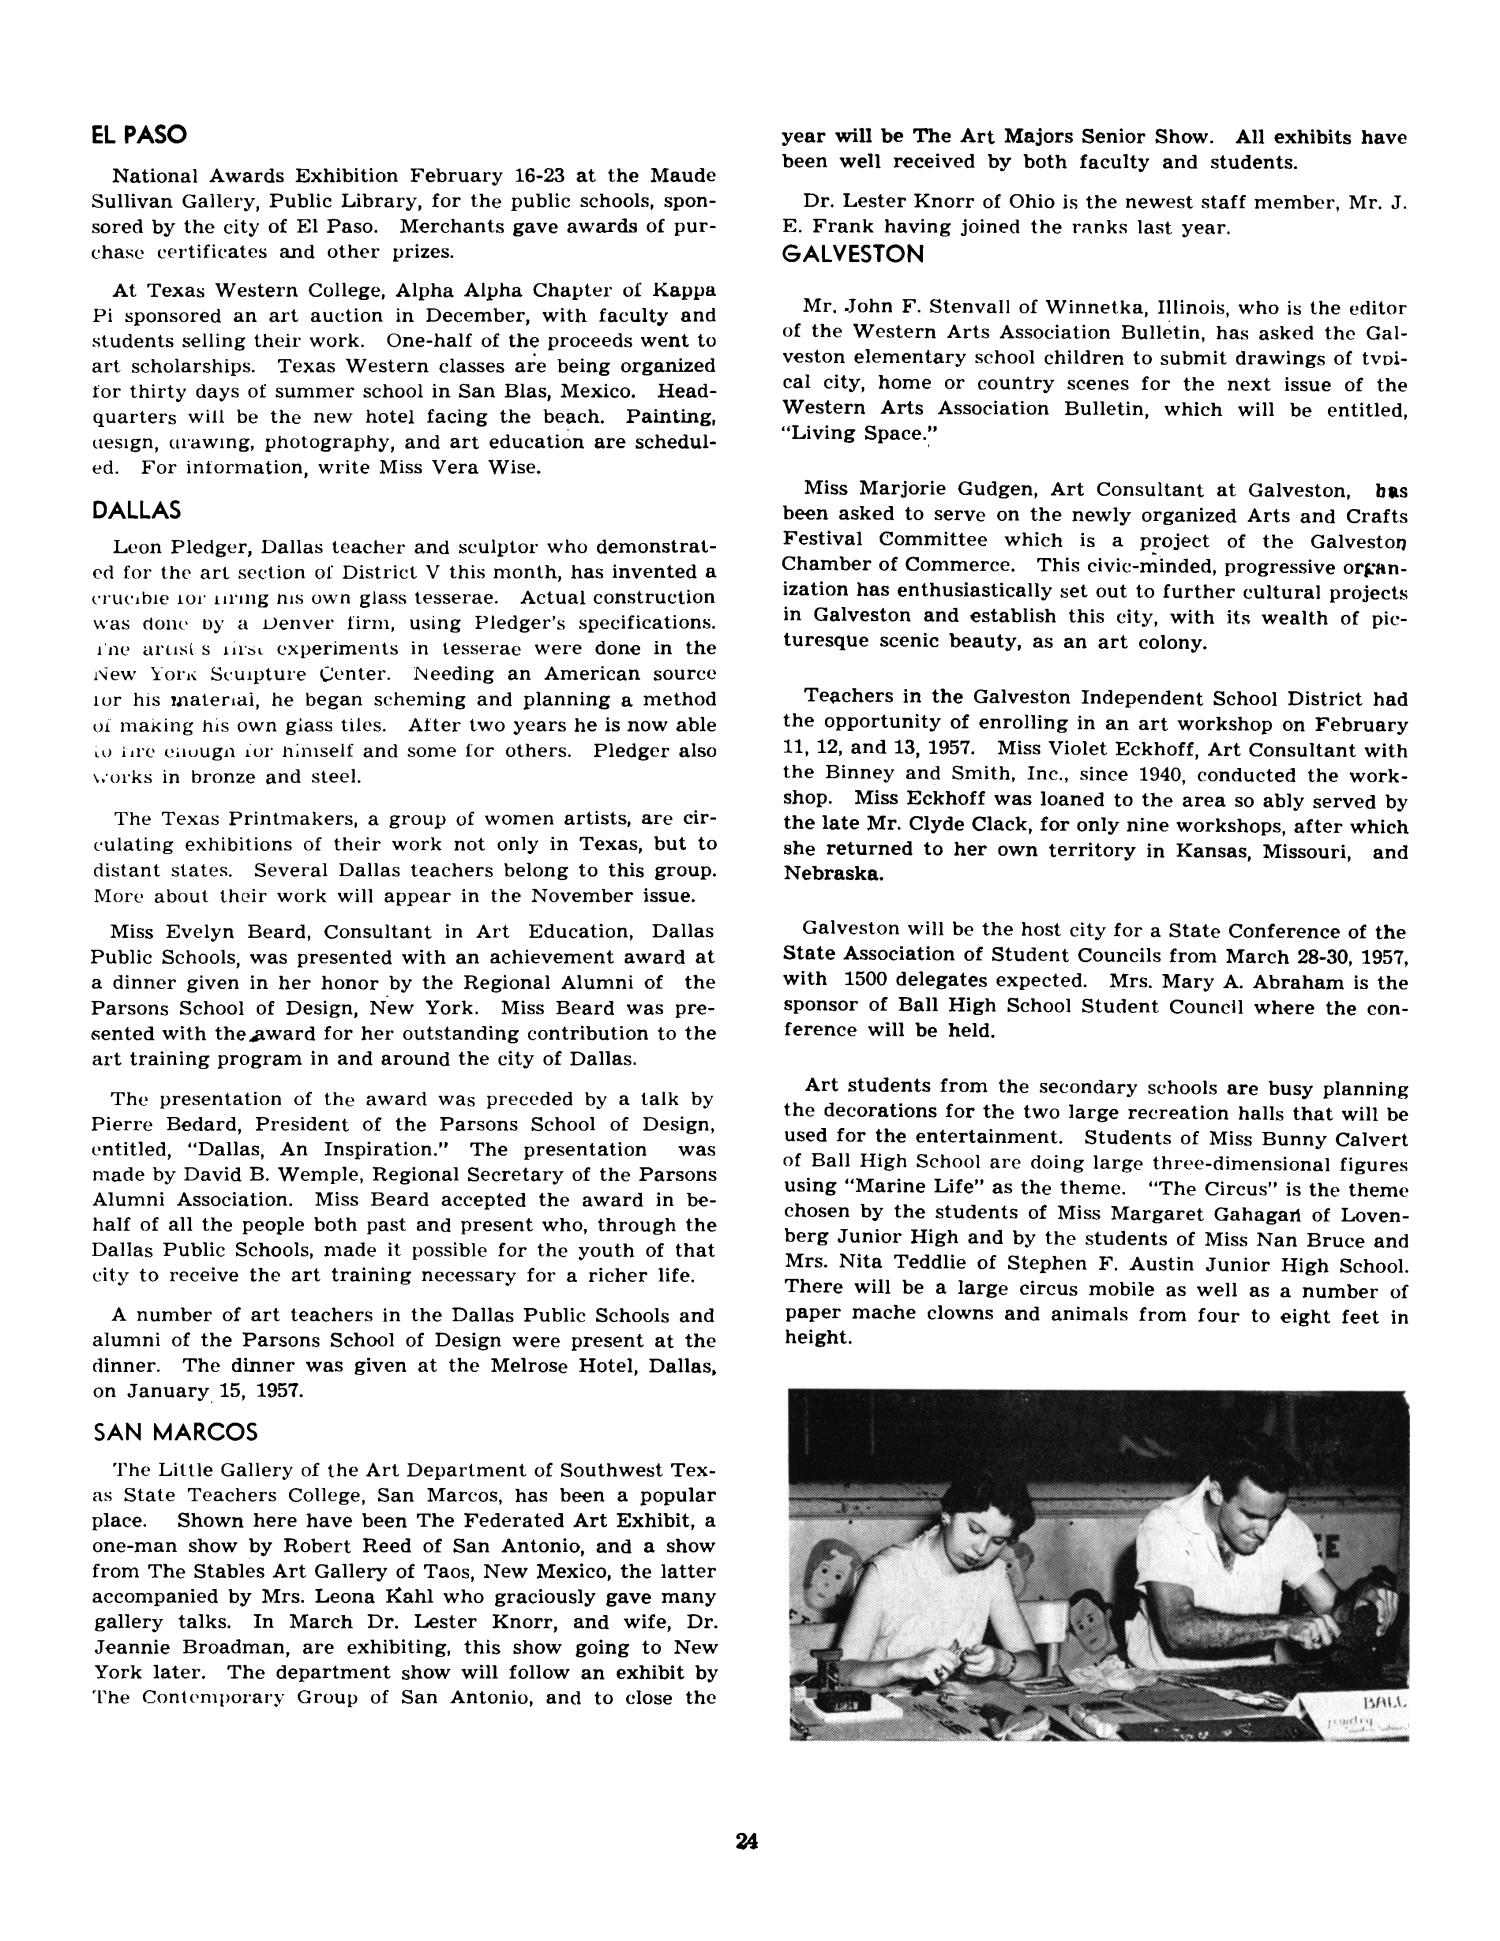 texas trends in art education march 1957 page 24 the portal to